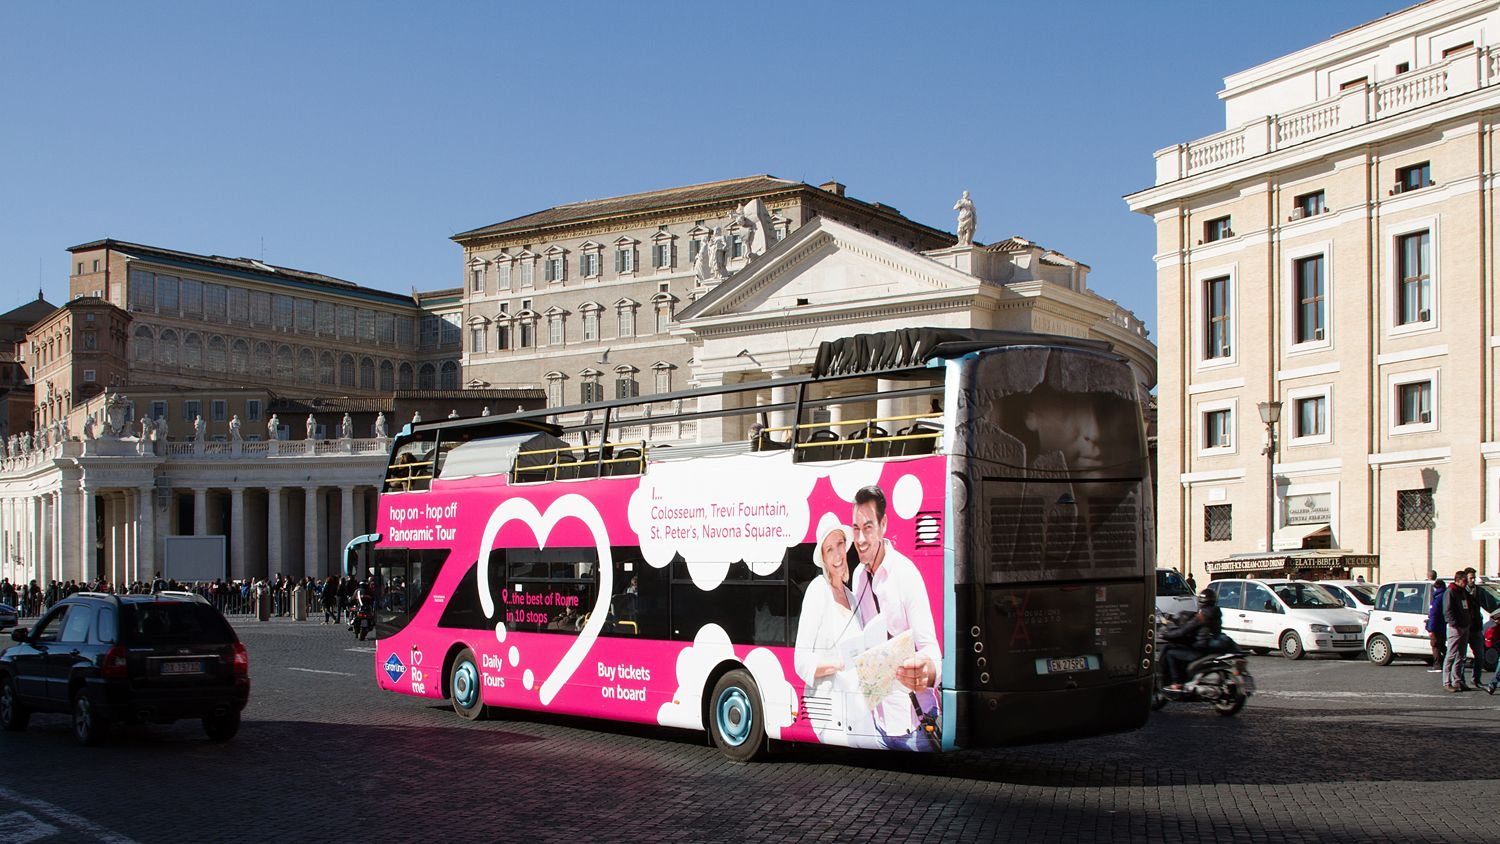 Photo of the tourbus driving through the streets of Rome, Italy.